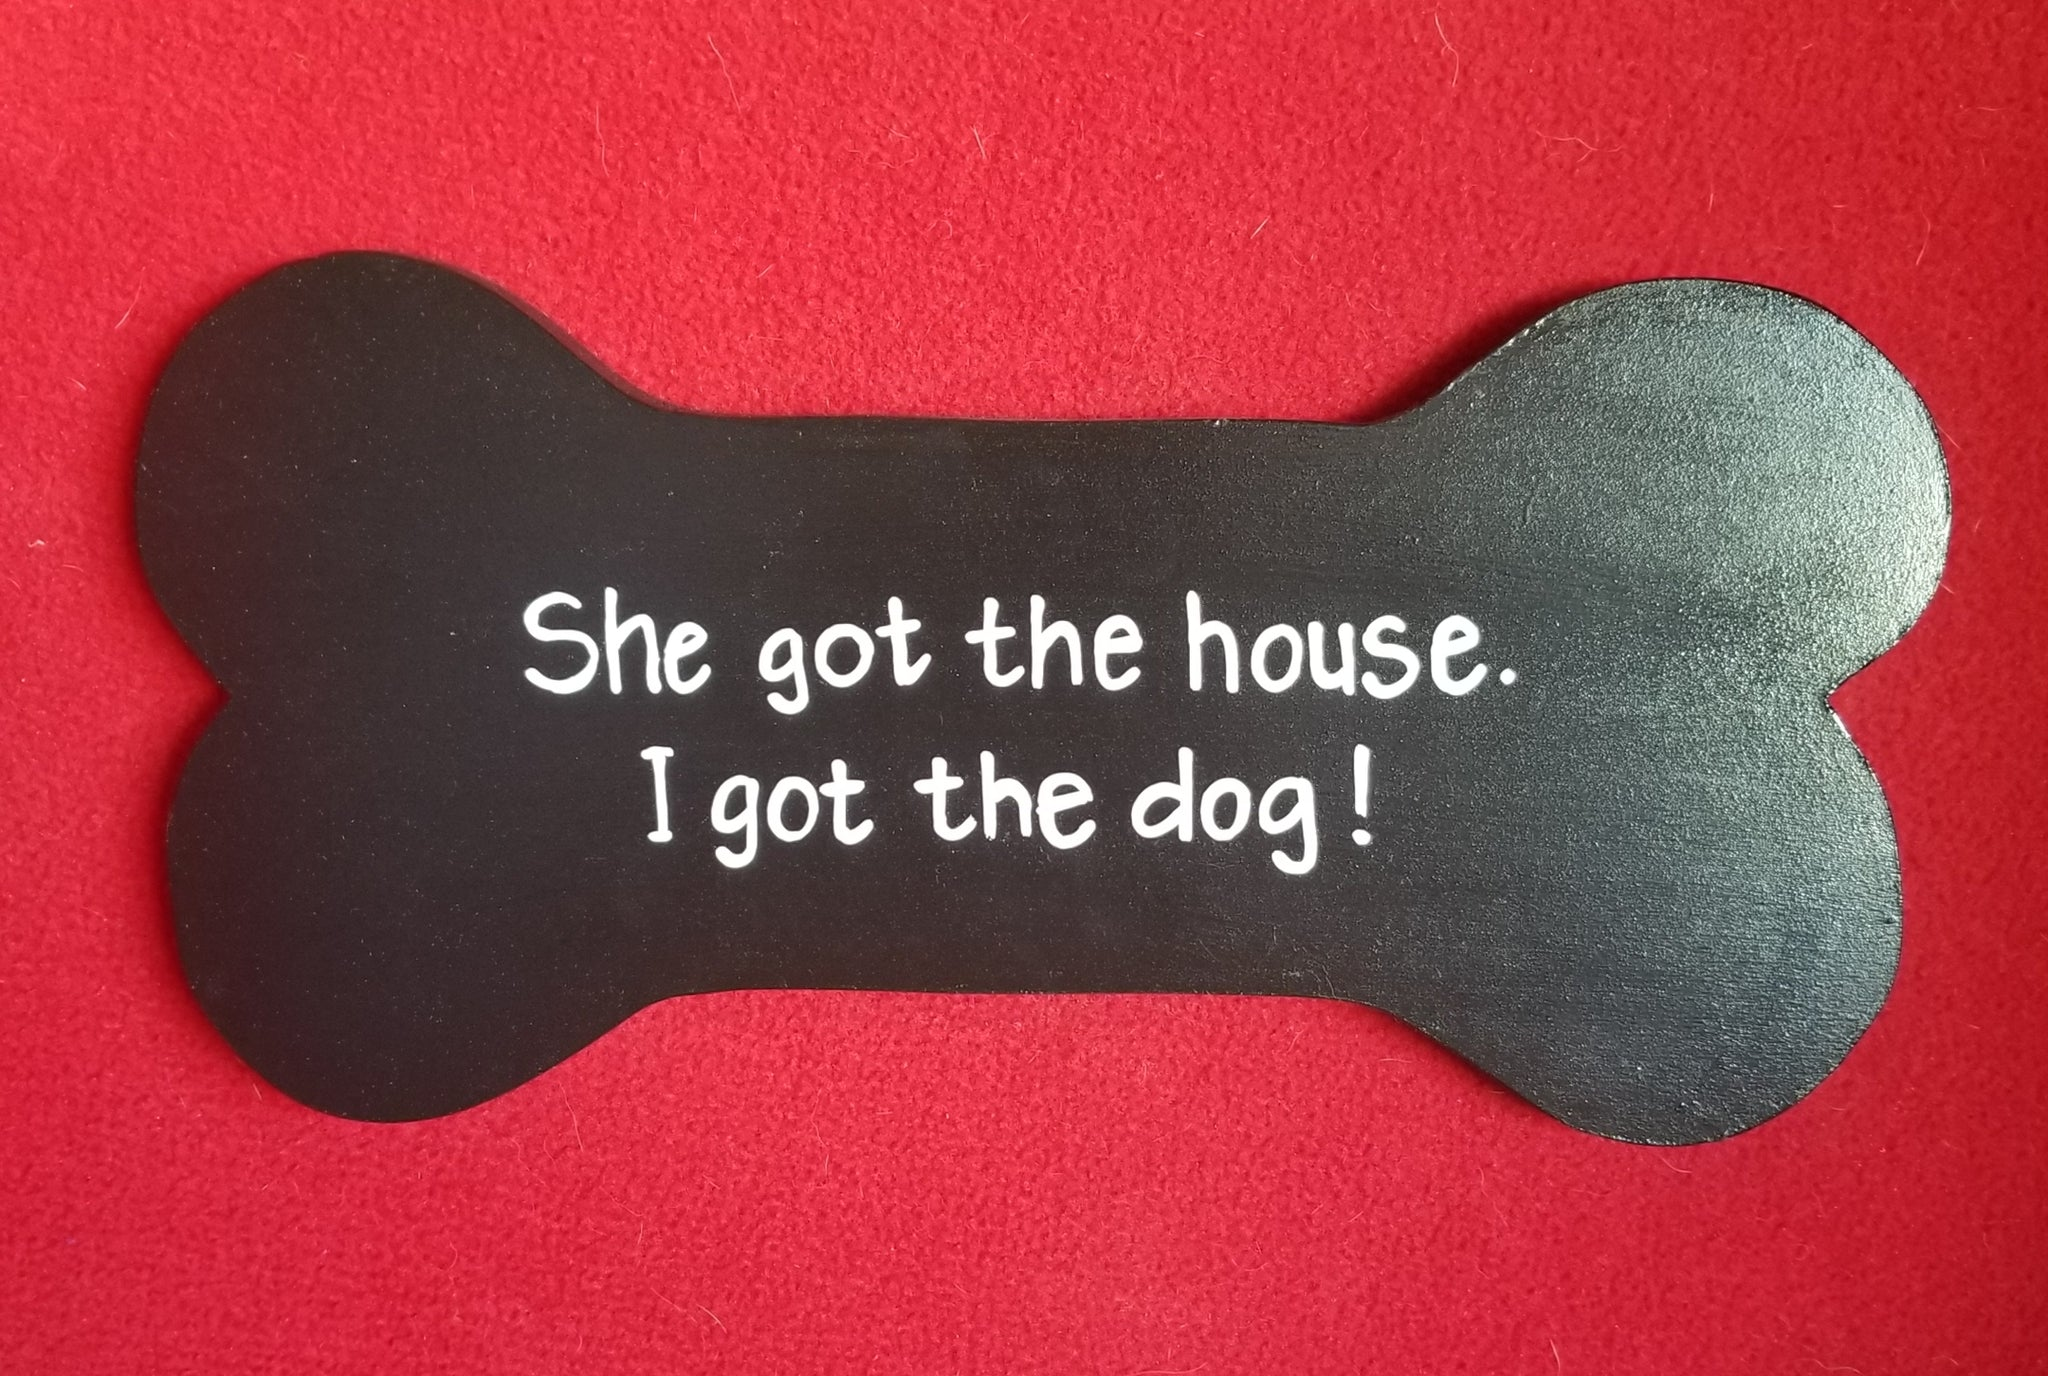 She got the house. I got the dog!